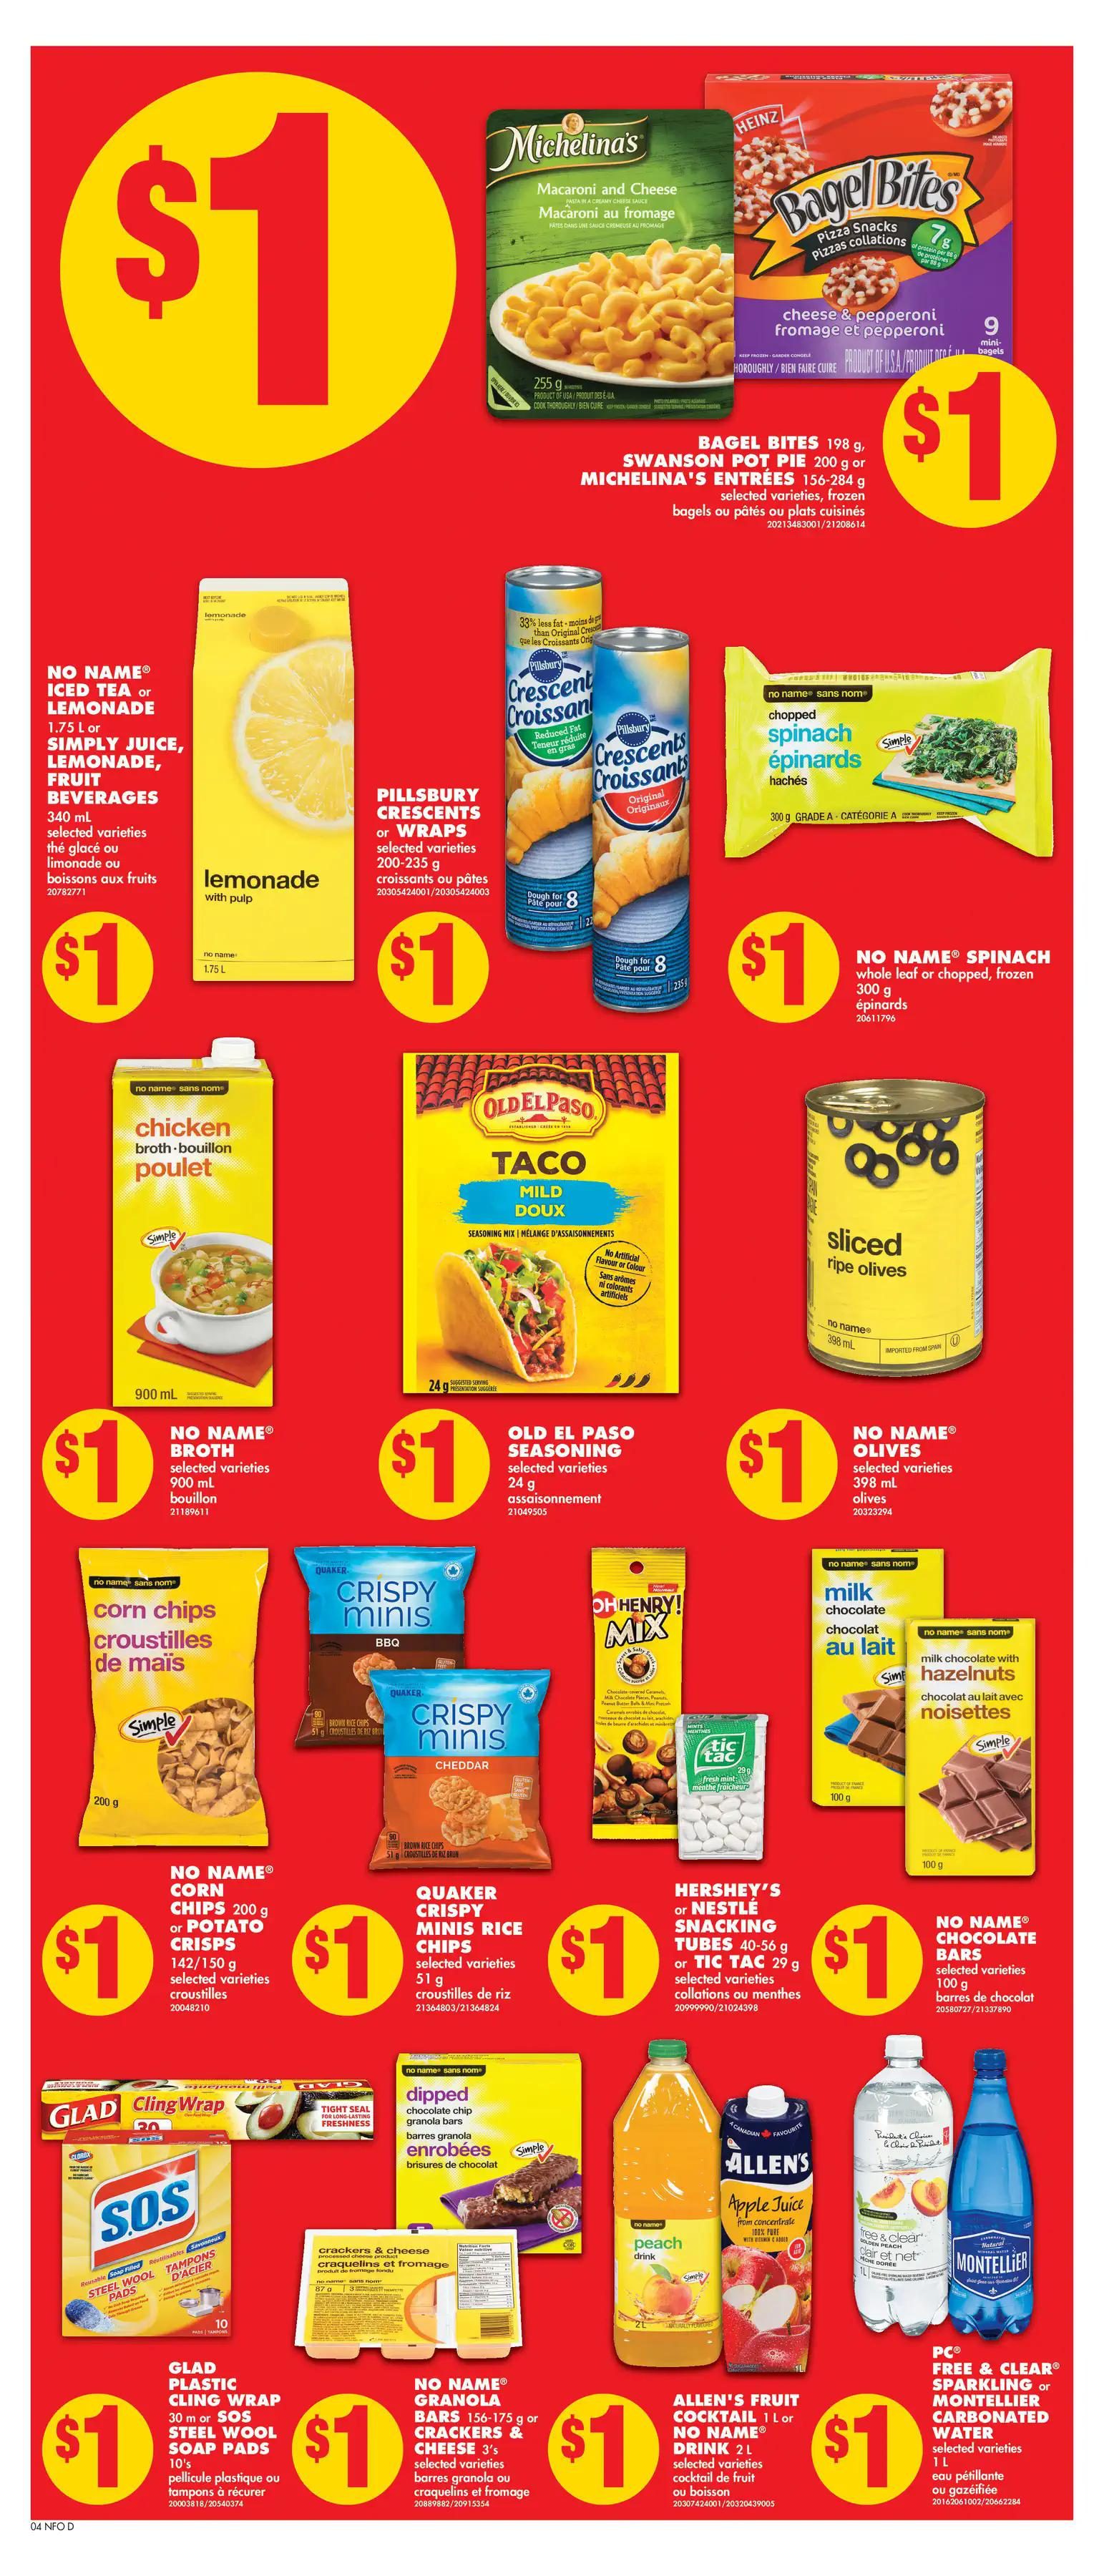 No Frills - Weekly Flyer Specials - Page 5